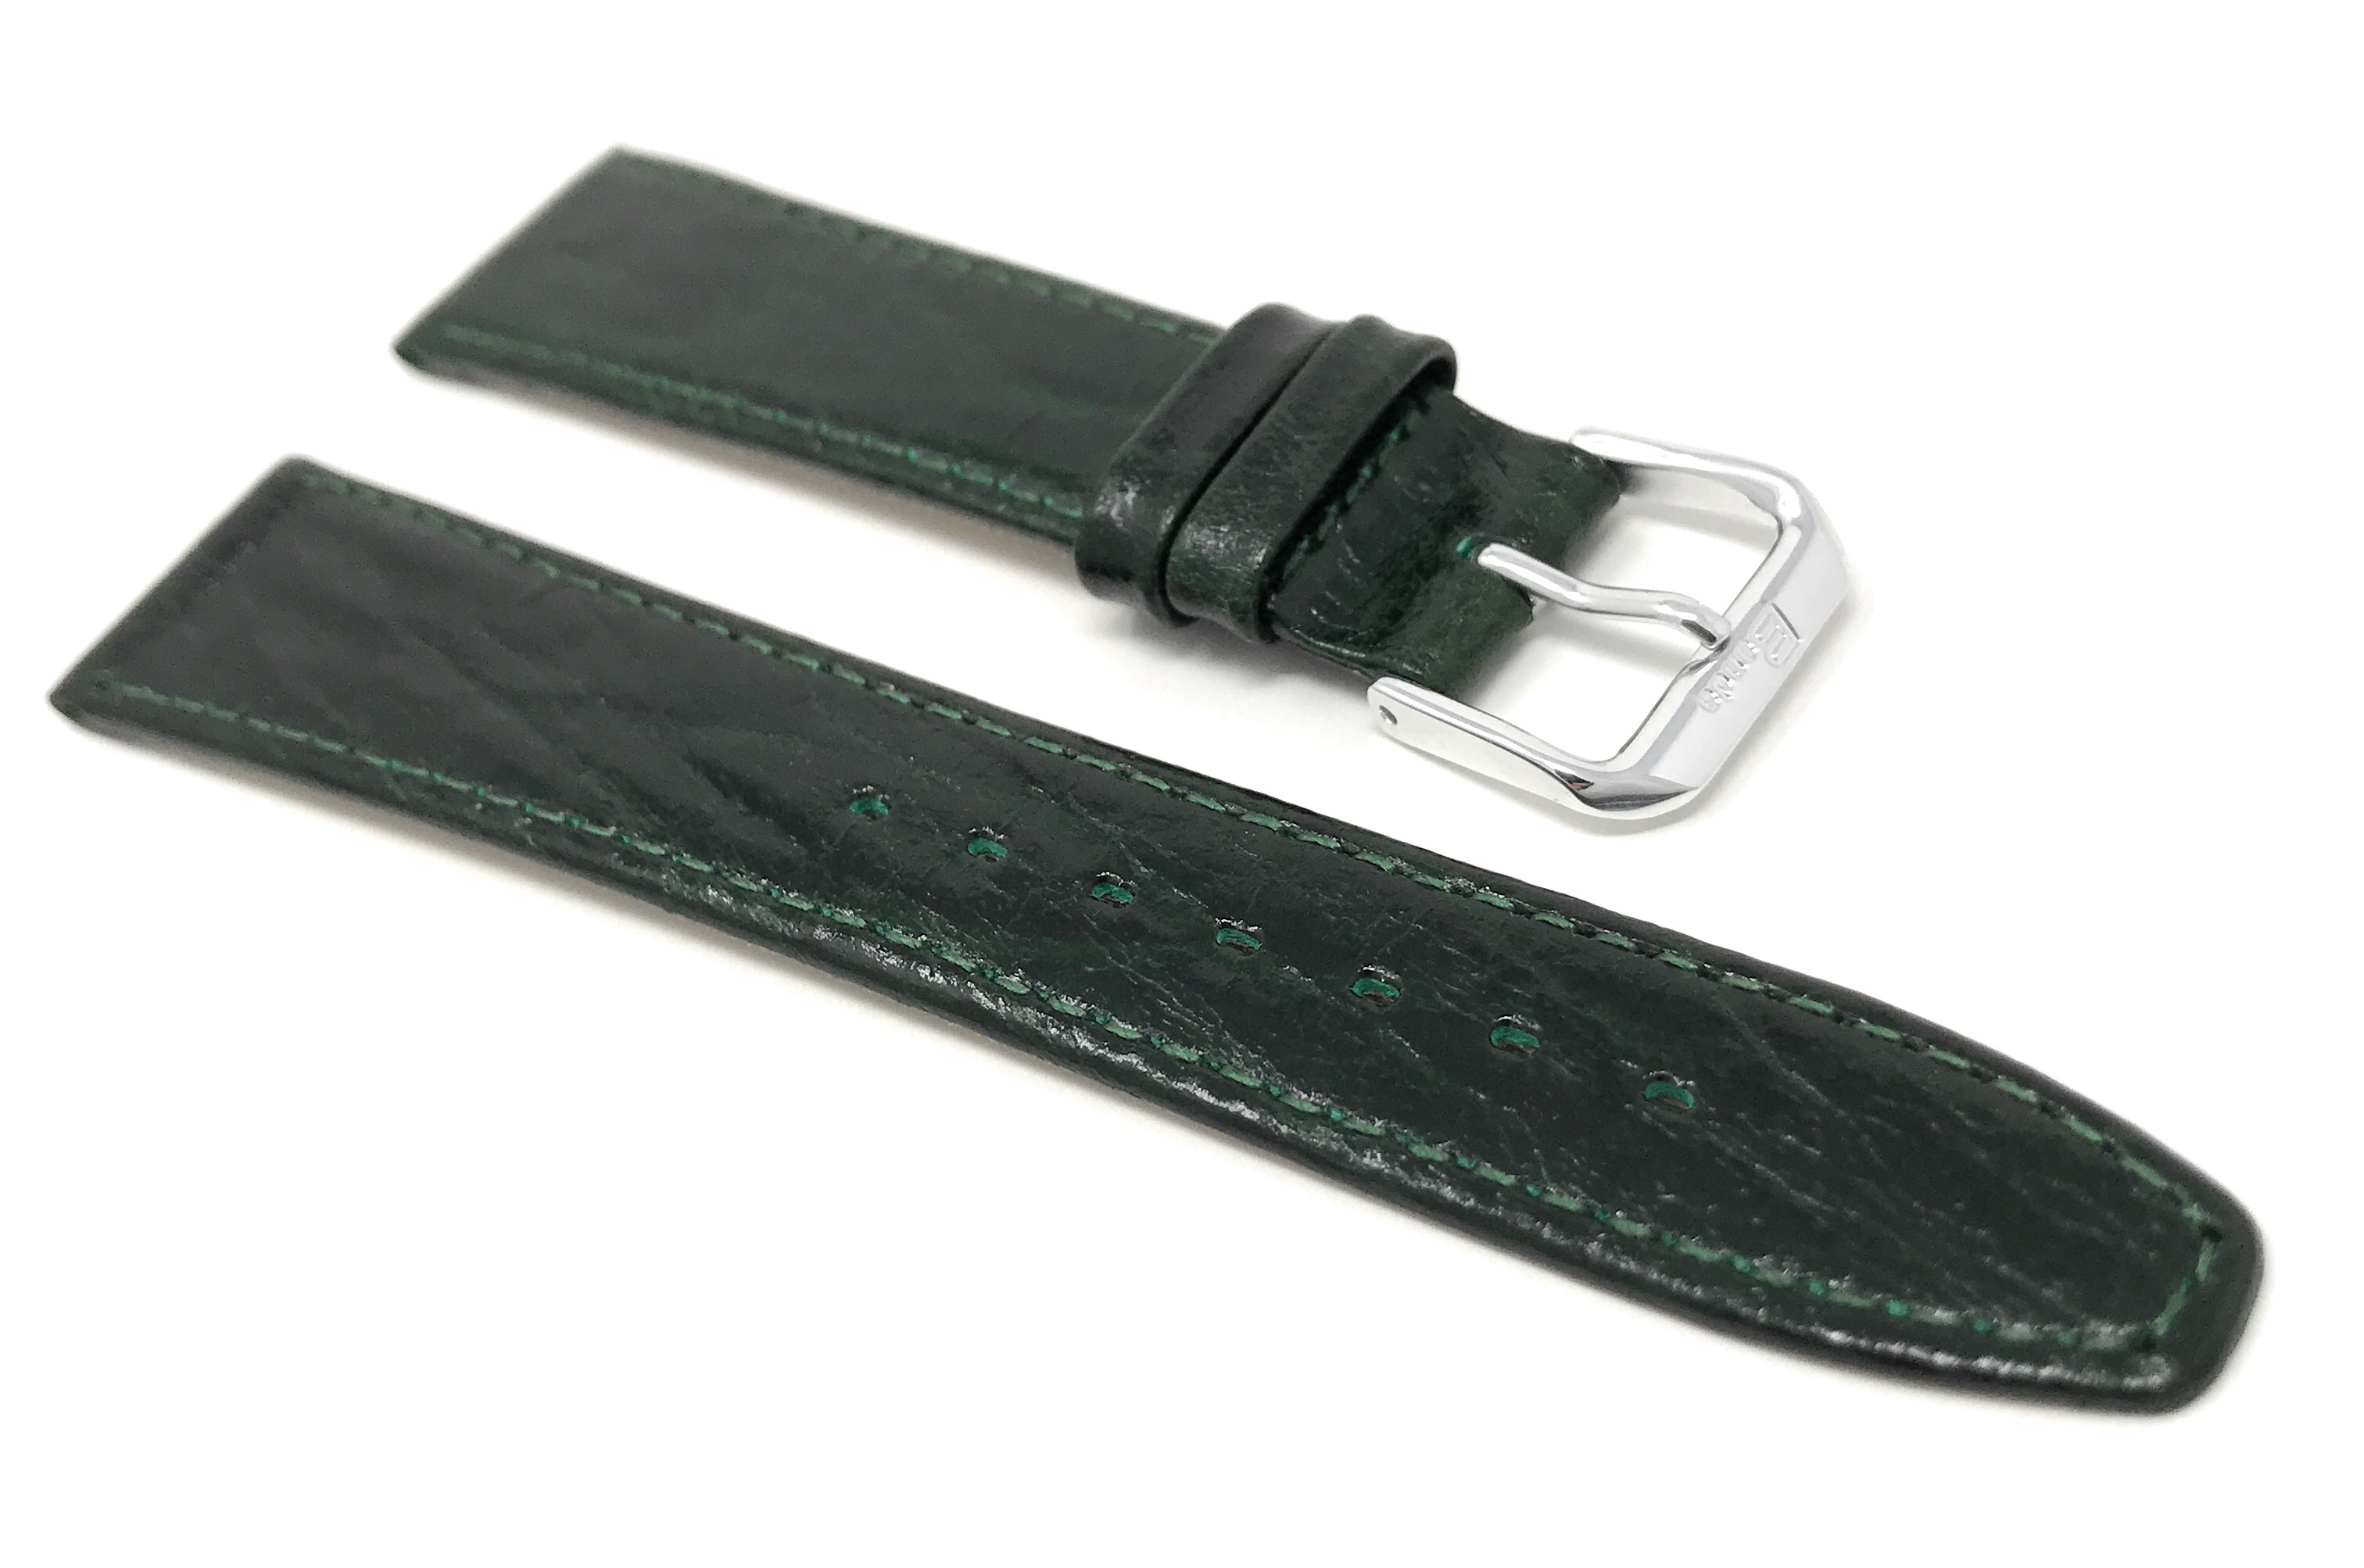 Bandini-Watch-Band-Leather-Strap-Semi-Glossy-10mm-20mm-Extra-Long-Also thumbnail 19